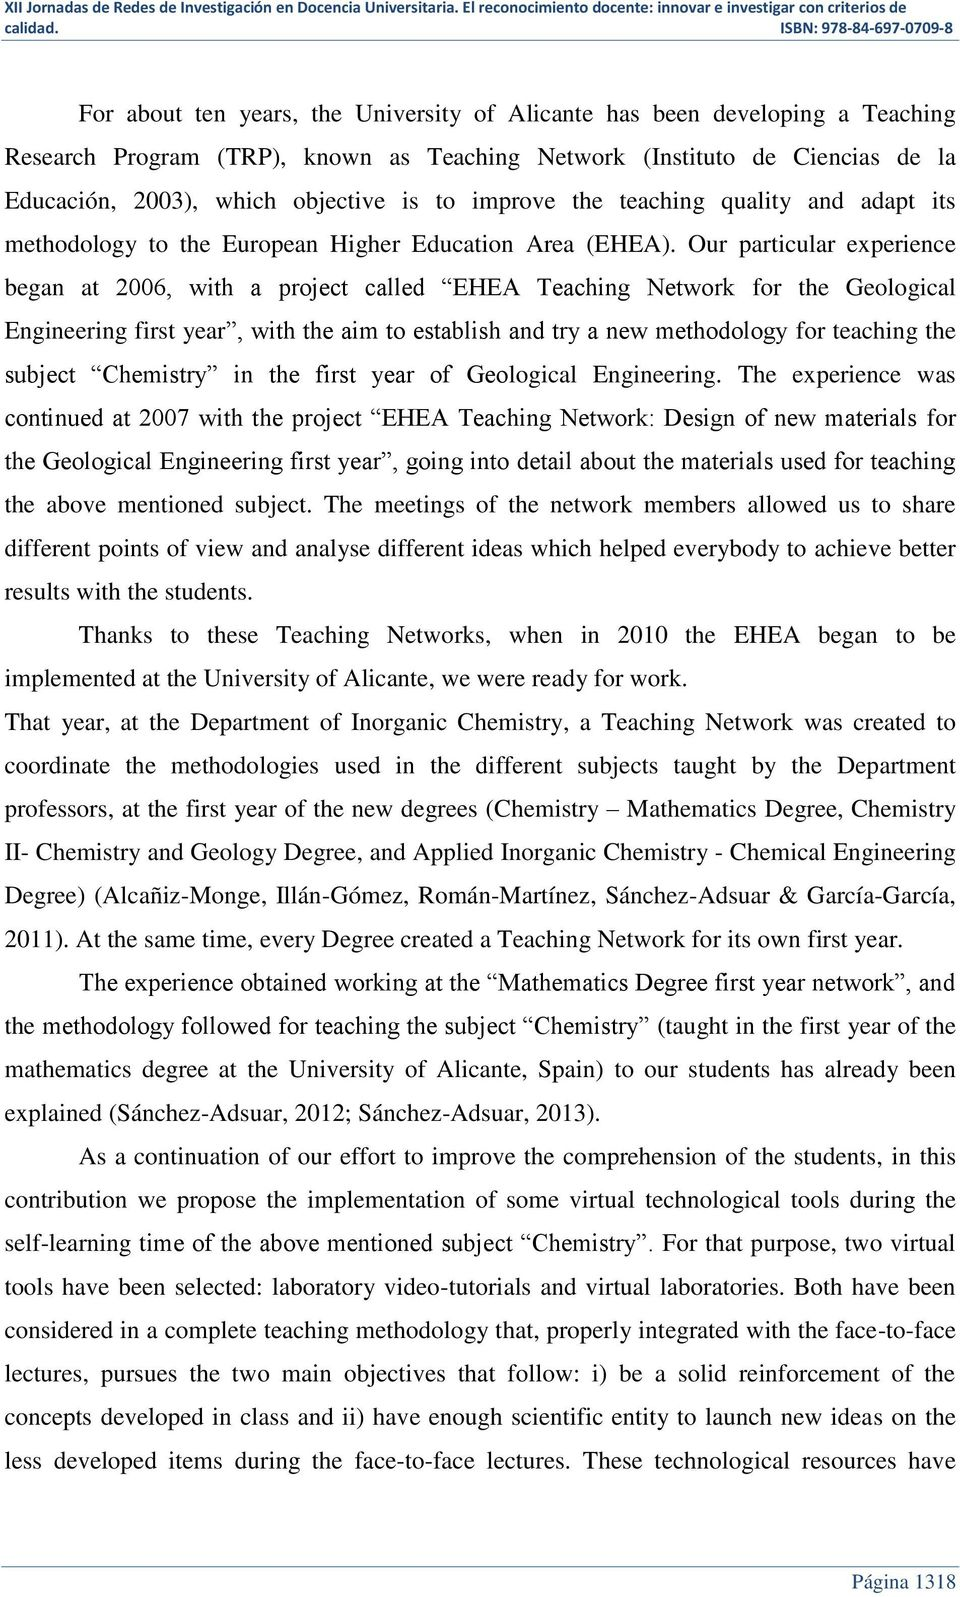 Our particular experience began at 2006, with a project called EHEA Teaching Network for the Geological Engineering first year, with the aim to establish and try a new methodology for teaching the